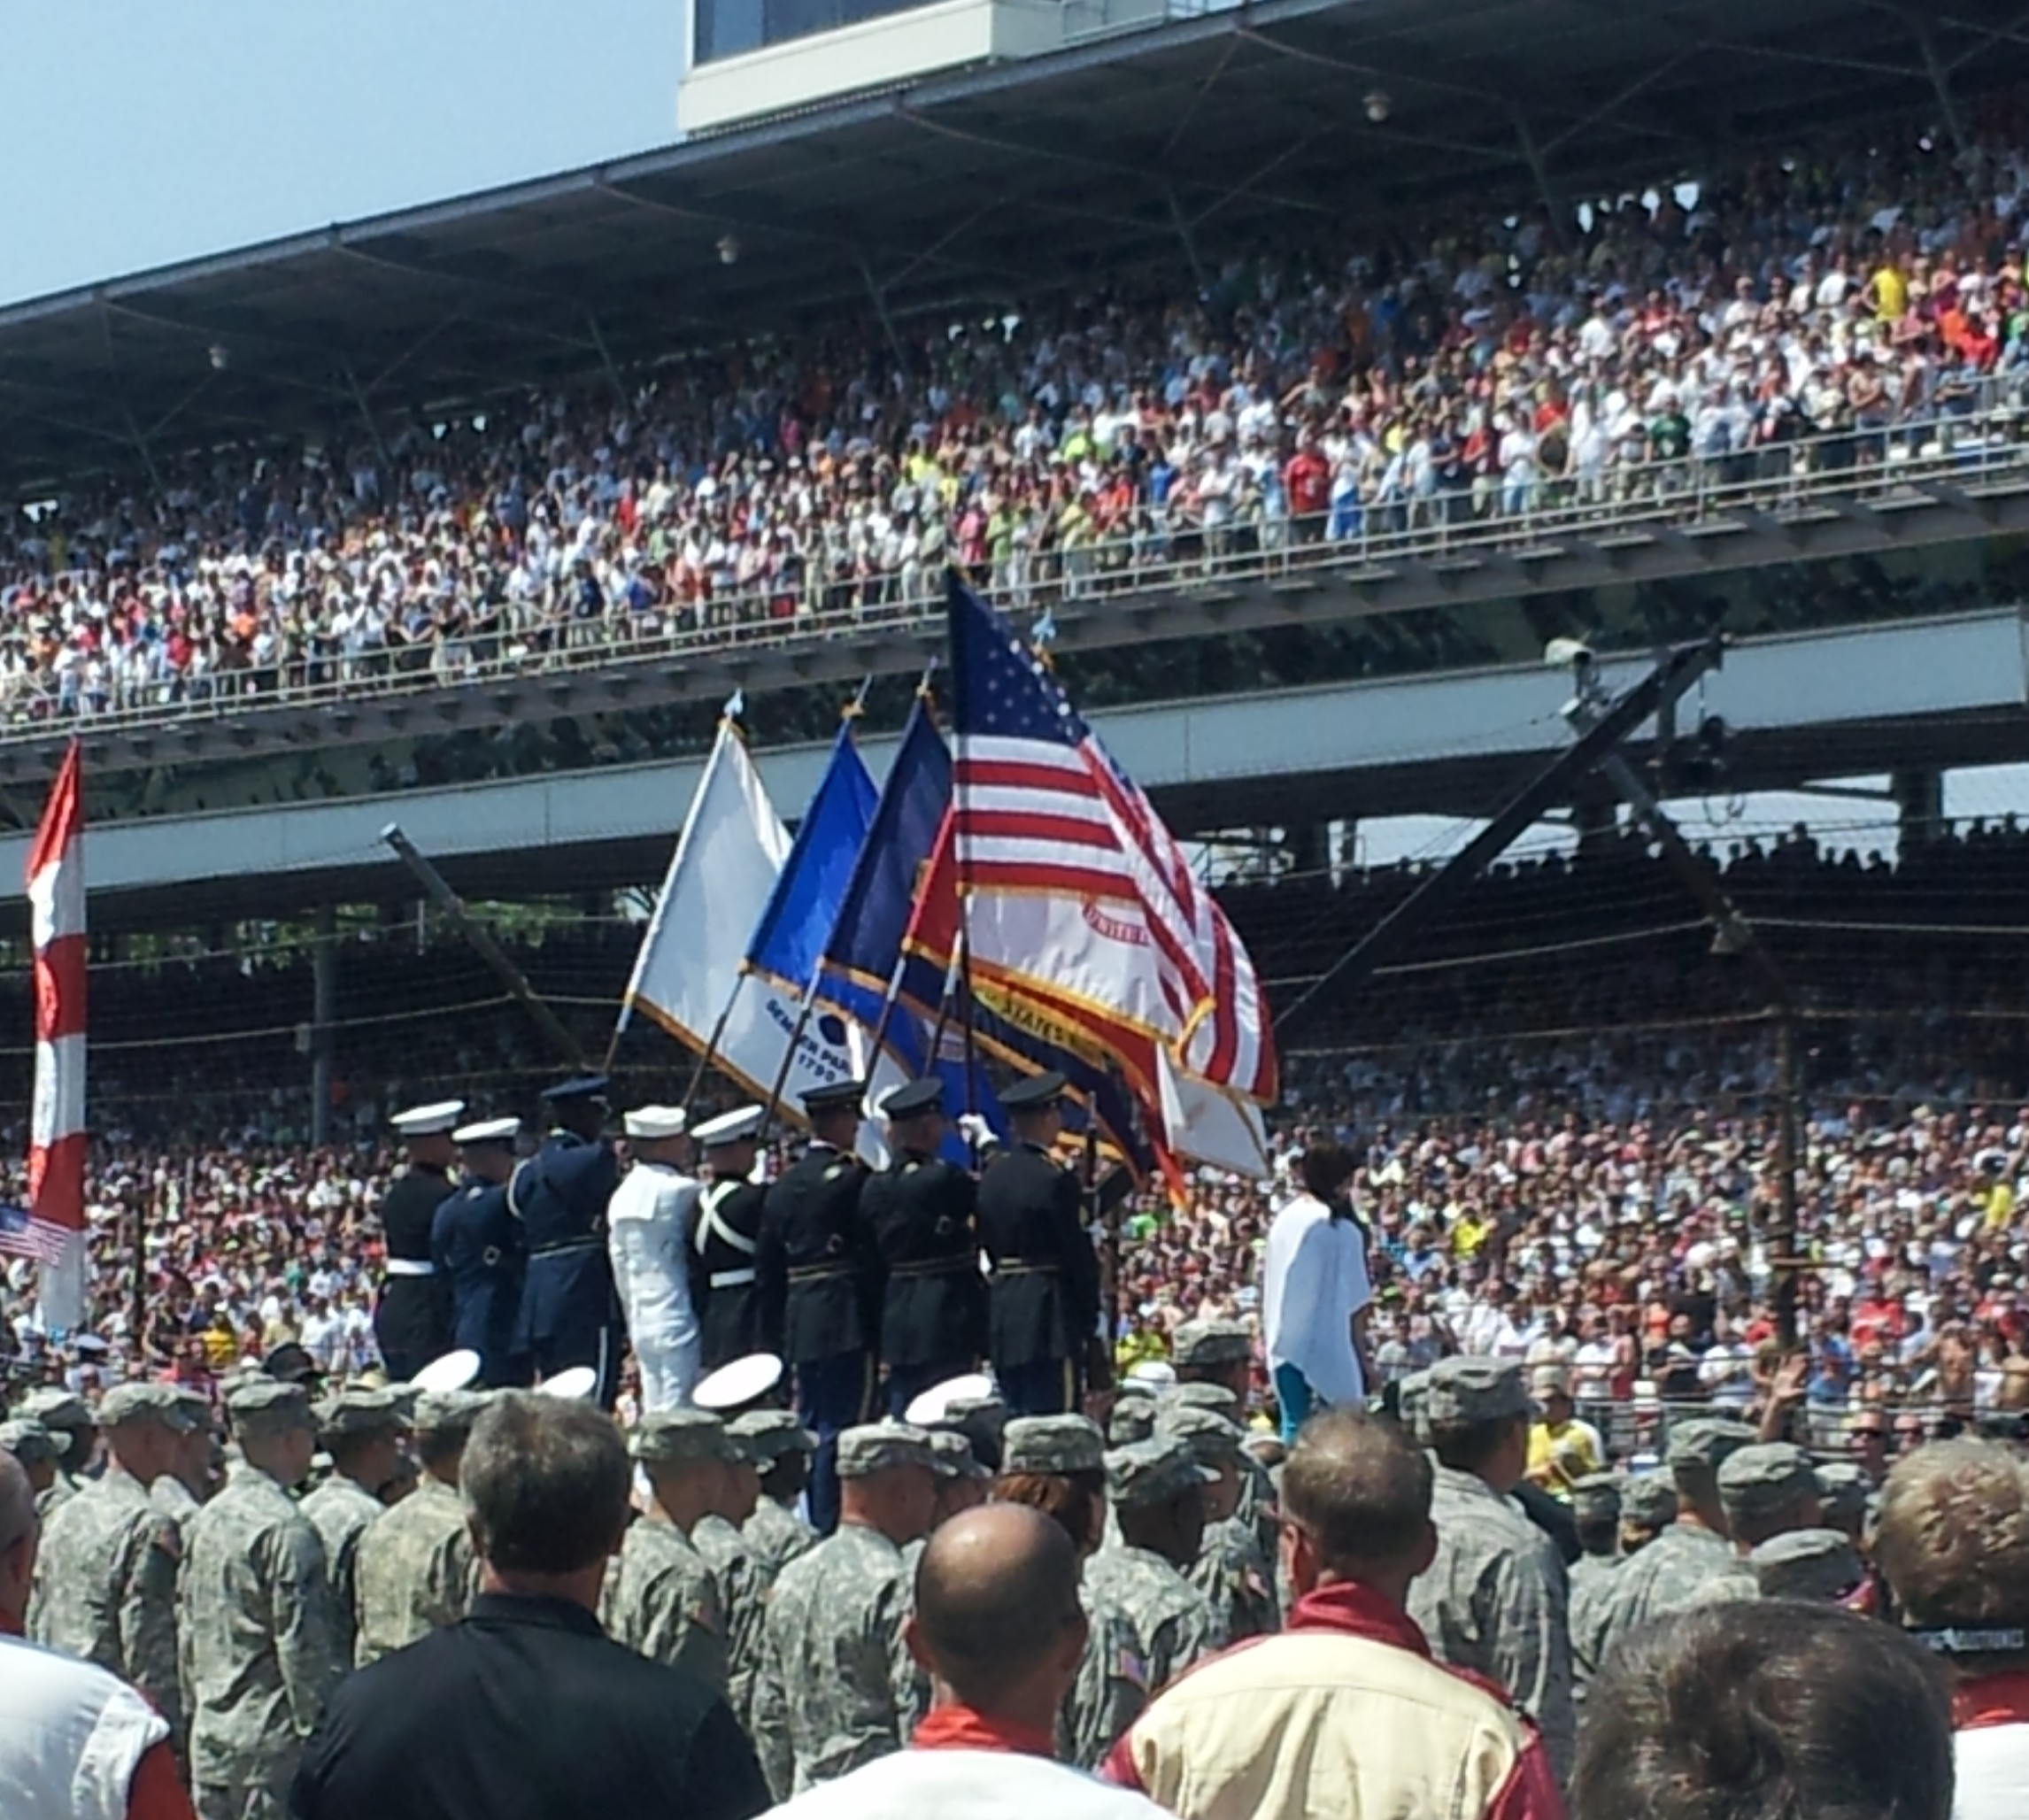 Martina McBride, far right on stage, sings national anthem